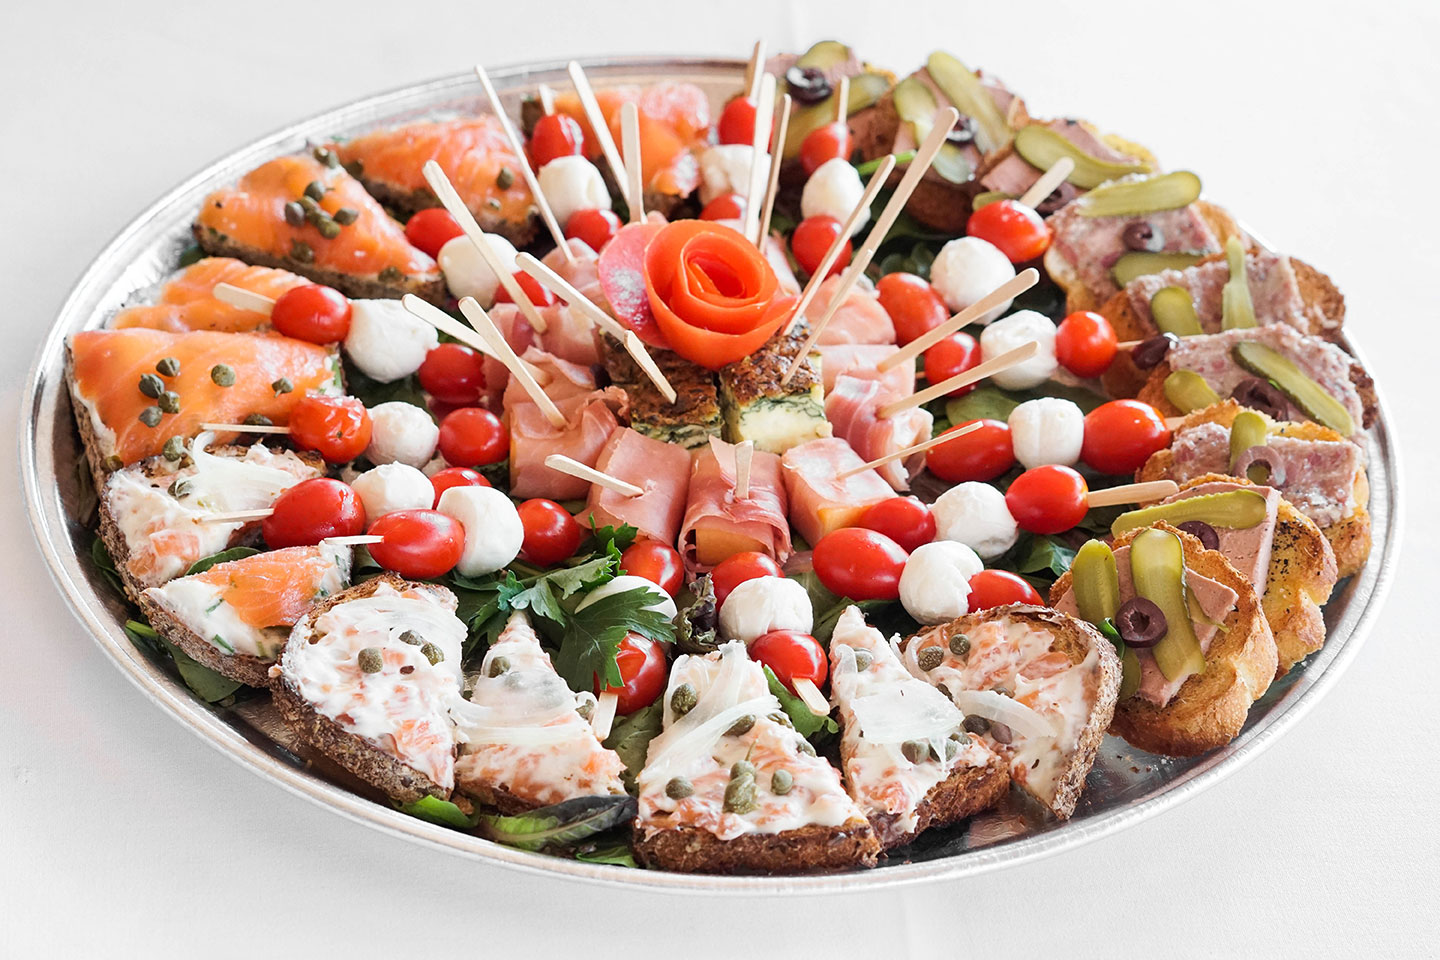 WeHo Bistro offers platters and catering to West Hollywood, CA